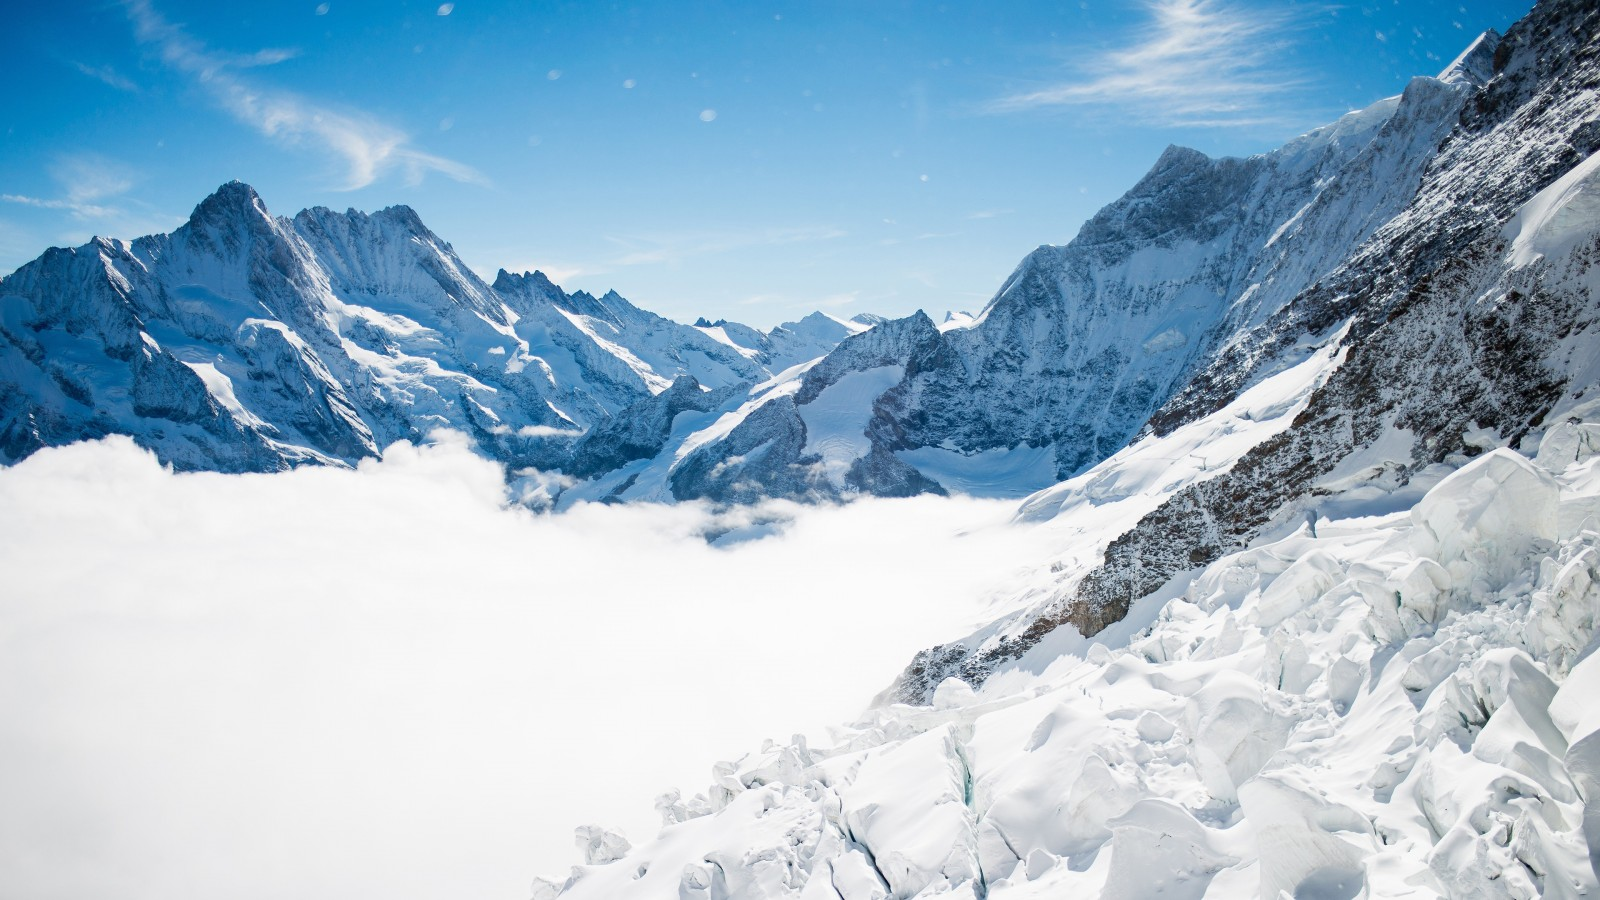 Pure And Original Bernese Alps Winter Mountains 4k Wallpapers | Hd